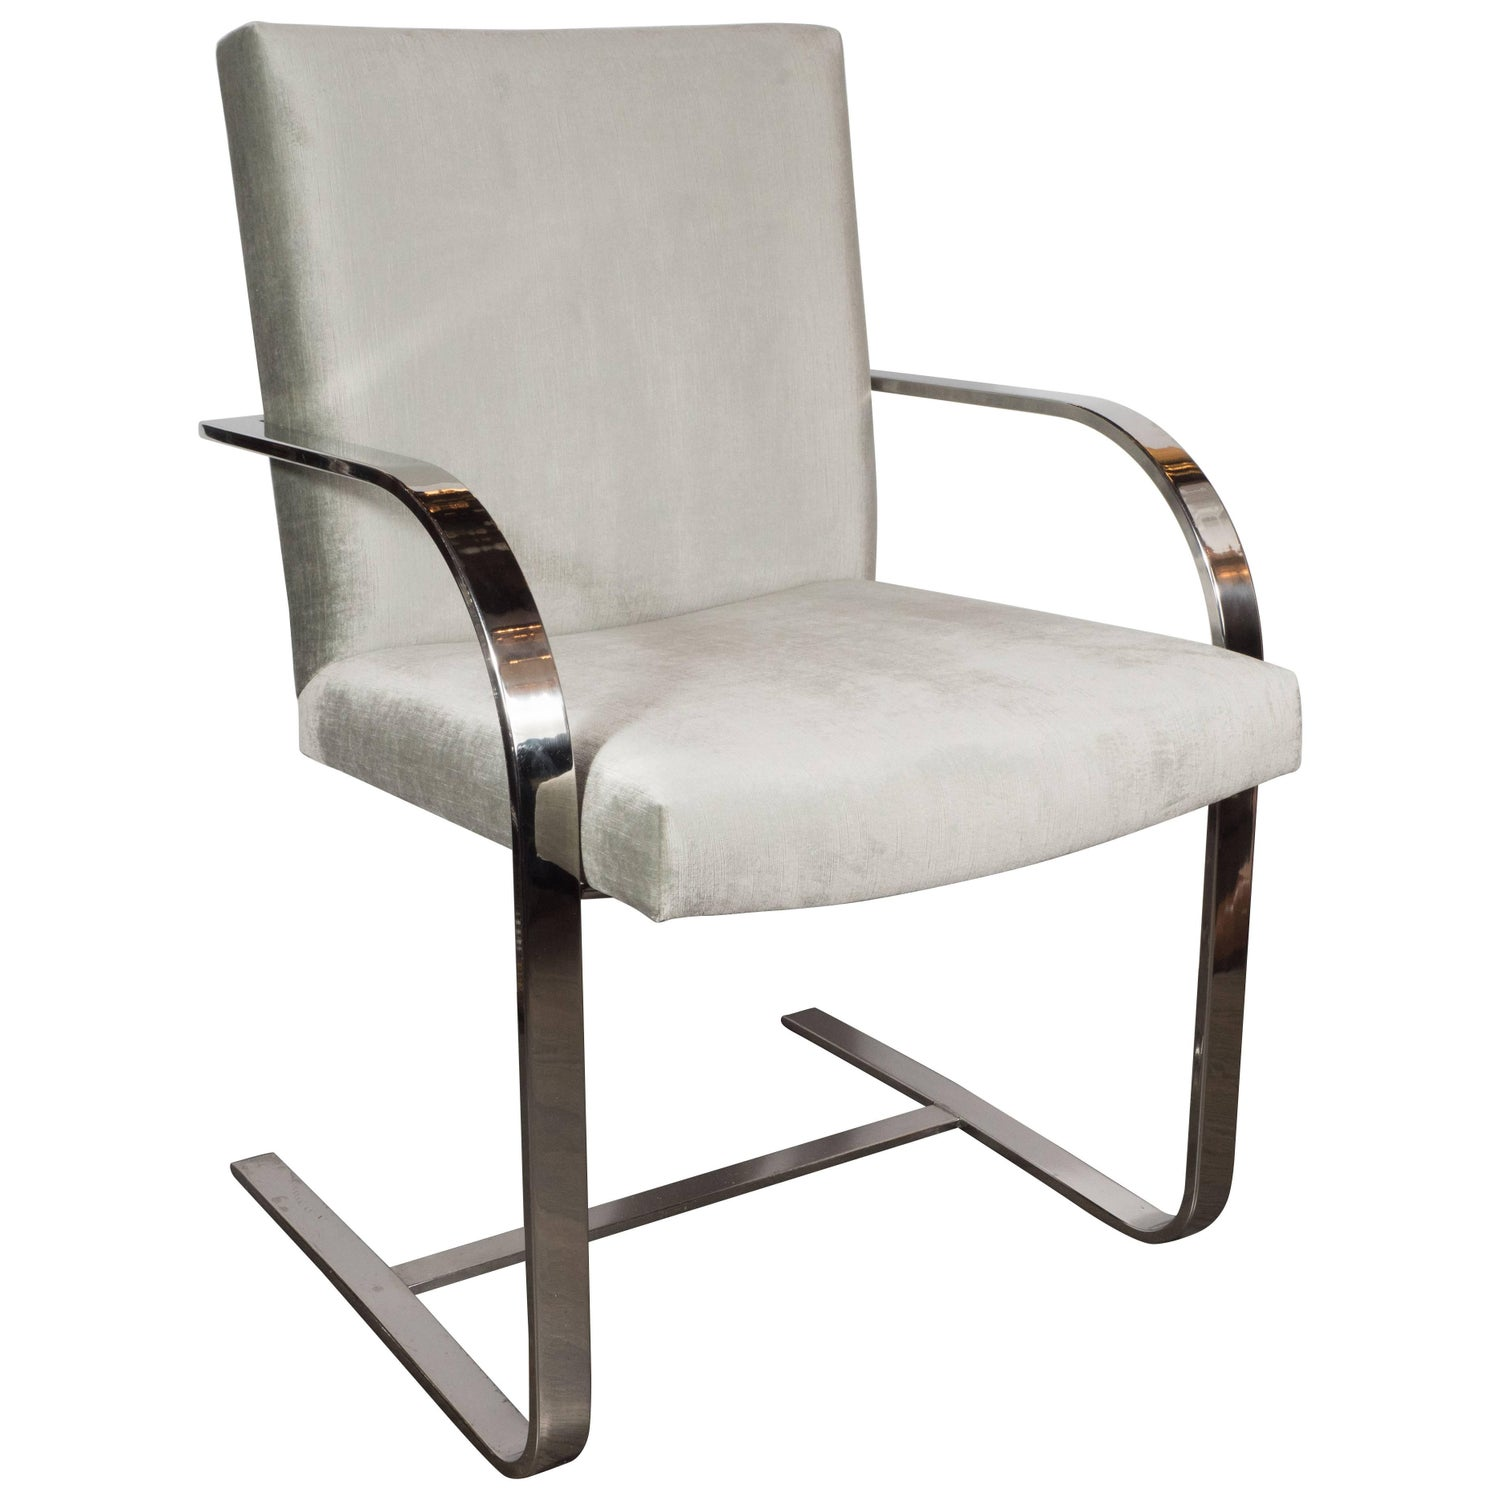 Vintage Mid Century BRNO Thin Series Tubular Leather Chair at 1stdibs